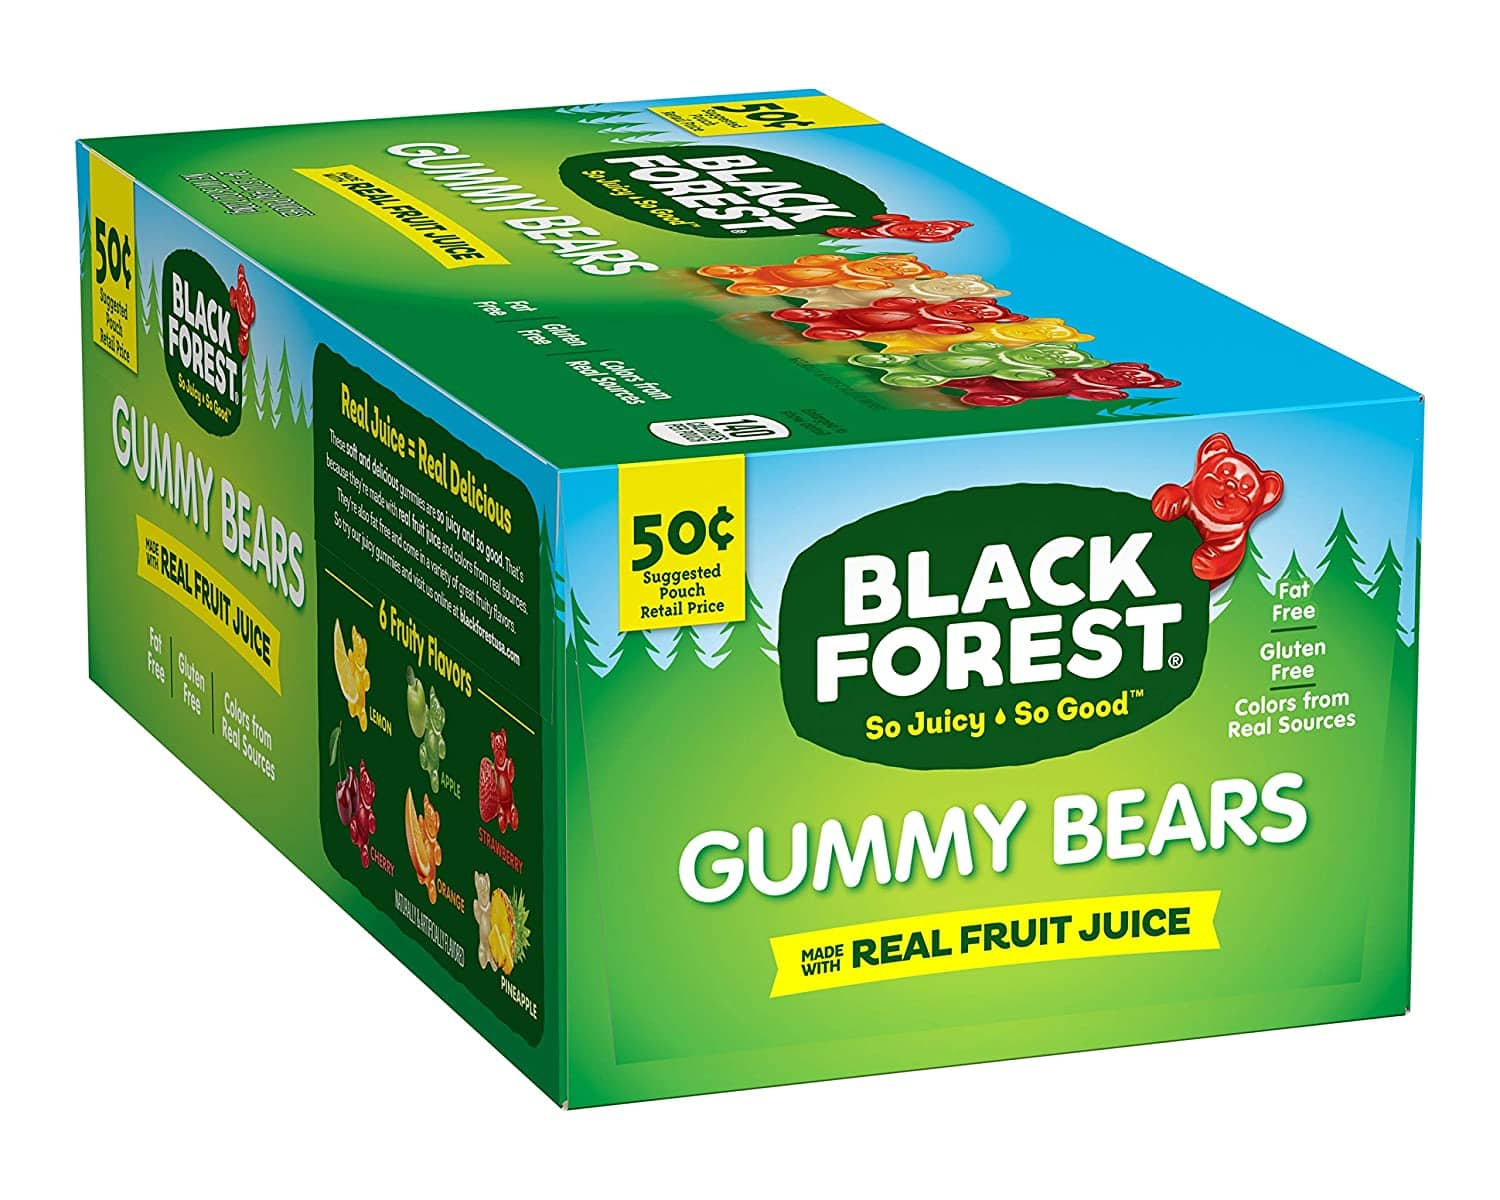 24-Count 1.5-Oz Black Forest Gummy Bears $6.76 ($0.28 each) w/ S&S + Free Shipping w/ Prime or on orders over $25